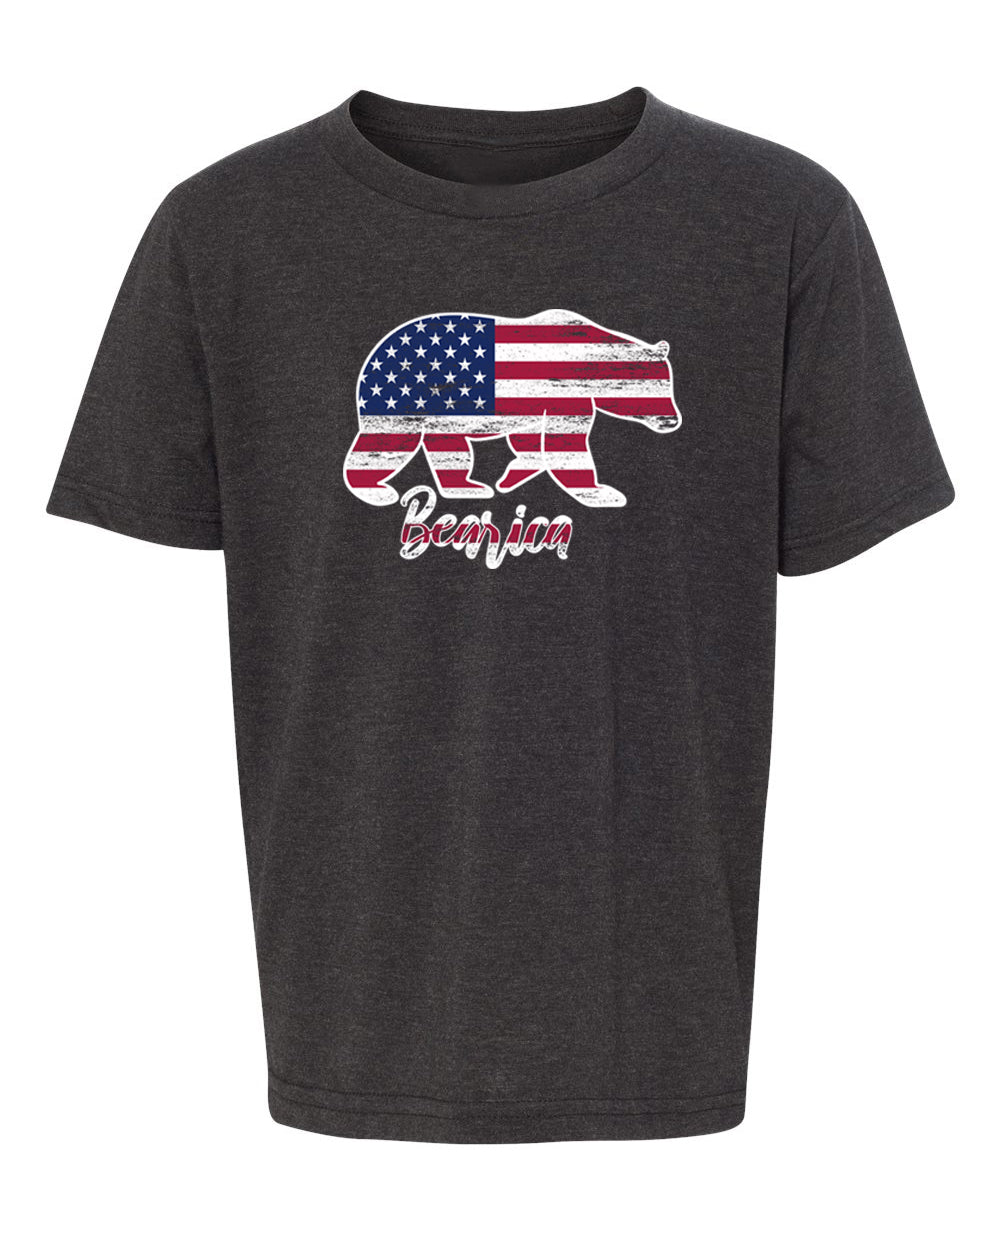 Shirt - Bearica American Flag Kid's 4th Of July Shirts, Patroitic Shirts For Kids